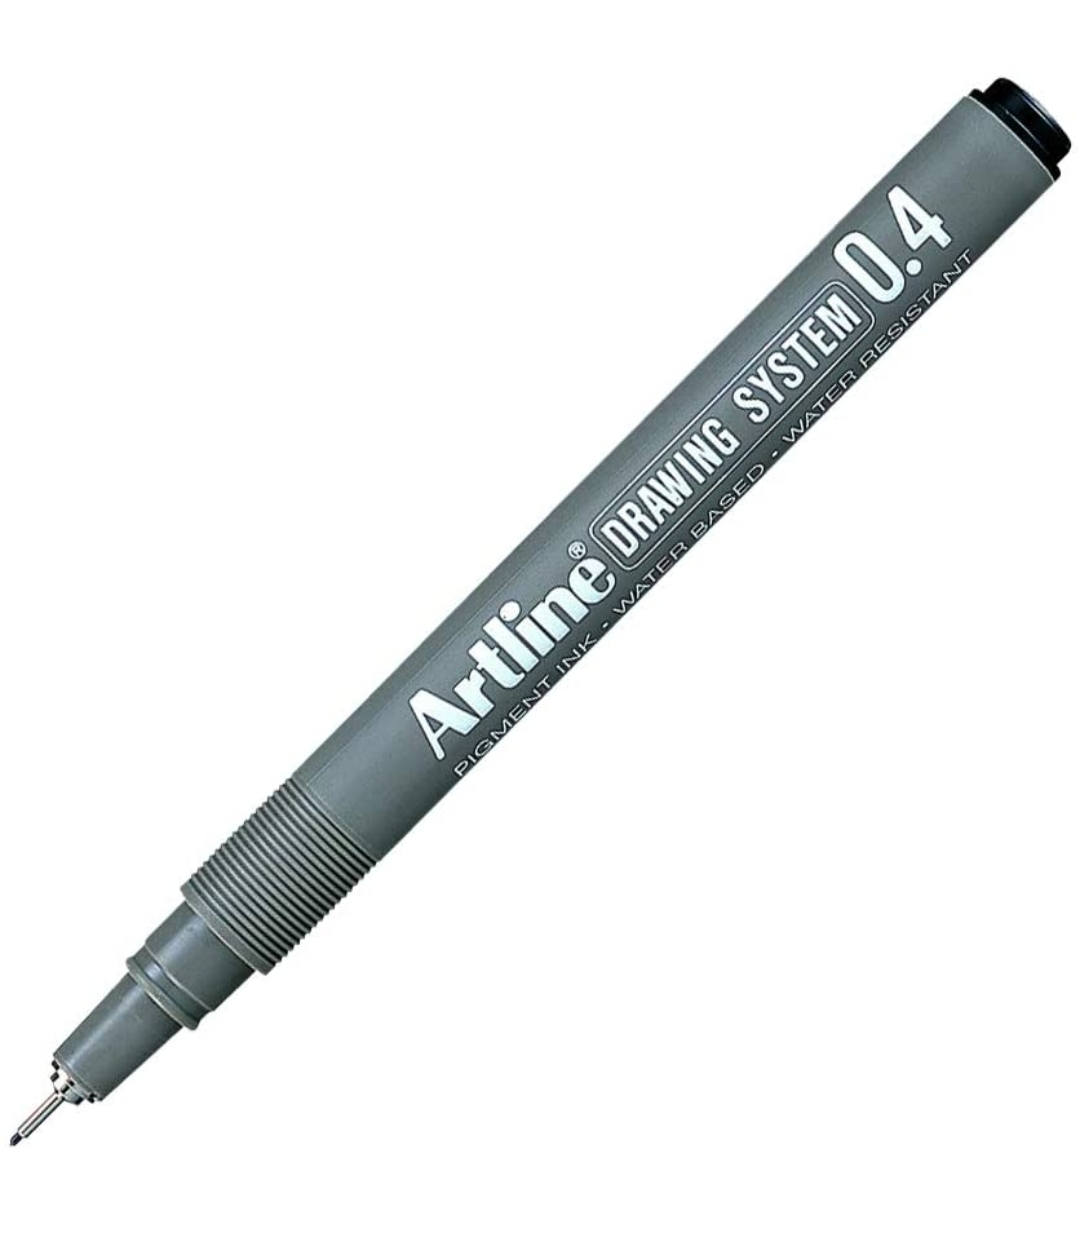 Artline Drawing System Artistic Technical Pen 0.4 mm Point Size Pack of 1